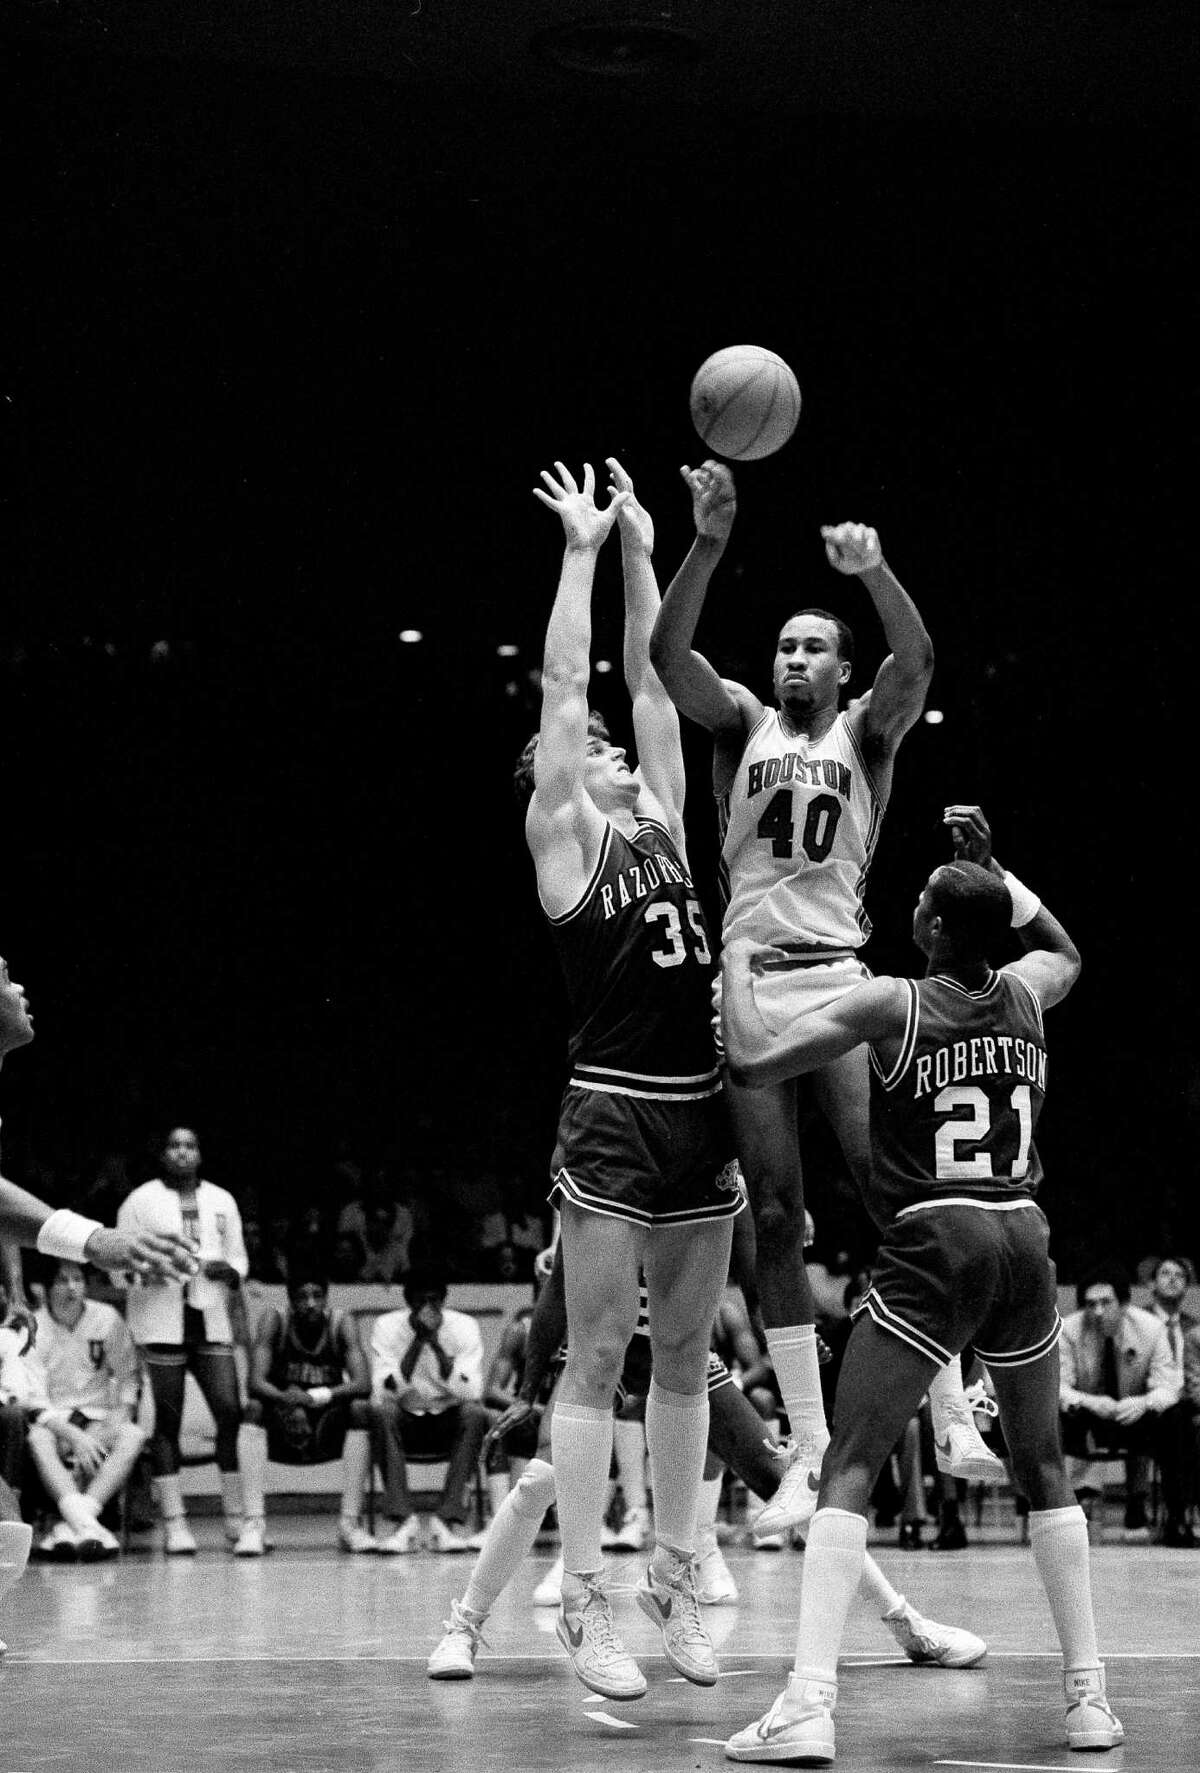 University of Houston's Larry Micheaux (40) is surrounded by Arkansas Razorbacks' Joe Klein (35) and Alvin Robertson (21) and decides to pass the ball during the first half of the Southwestern Conference in Houston, Jan. 22, 1983.